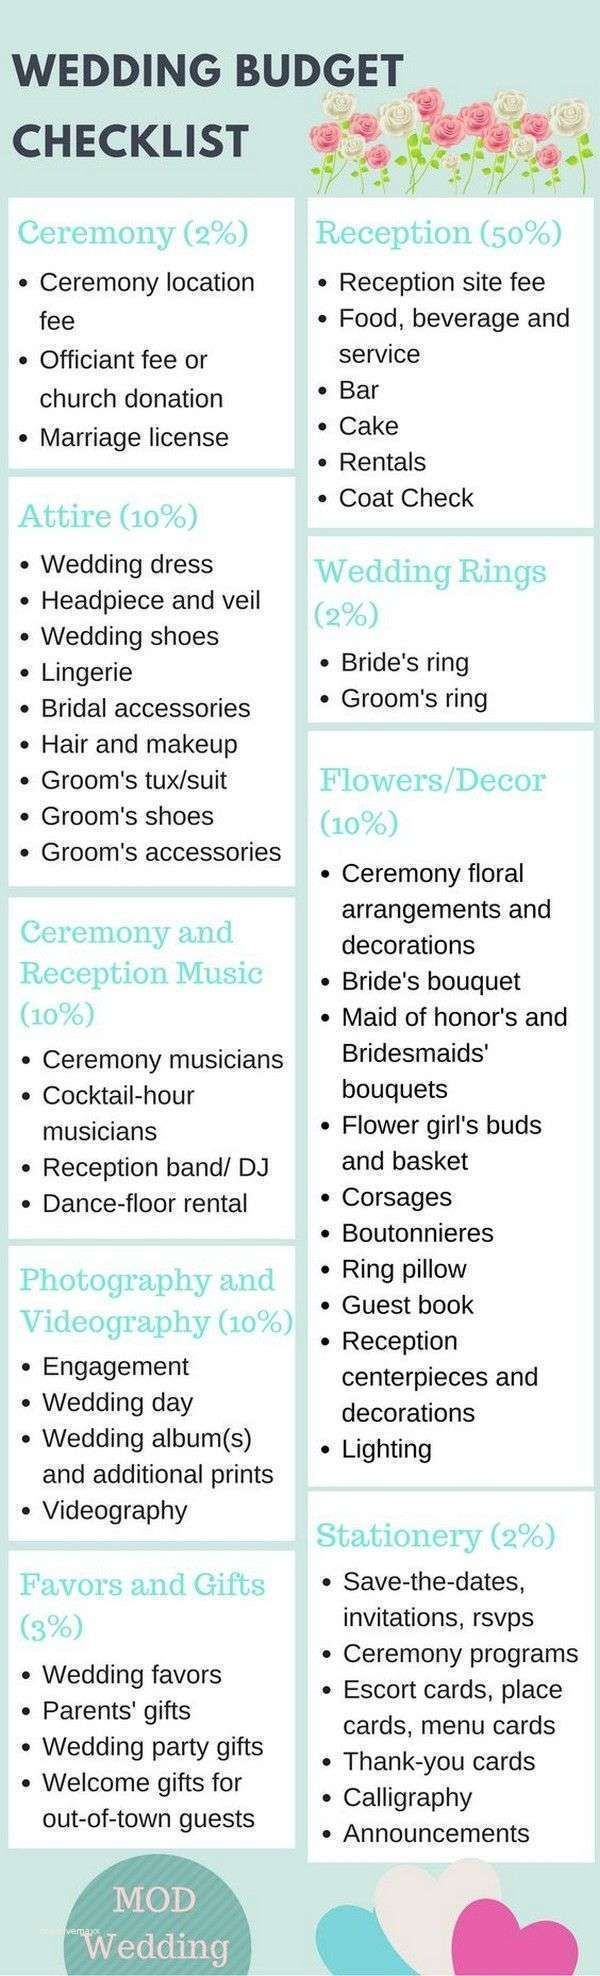 wedding todo checklist